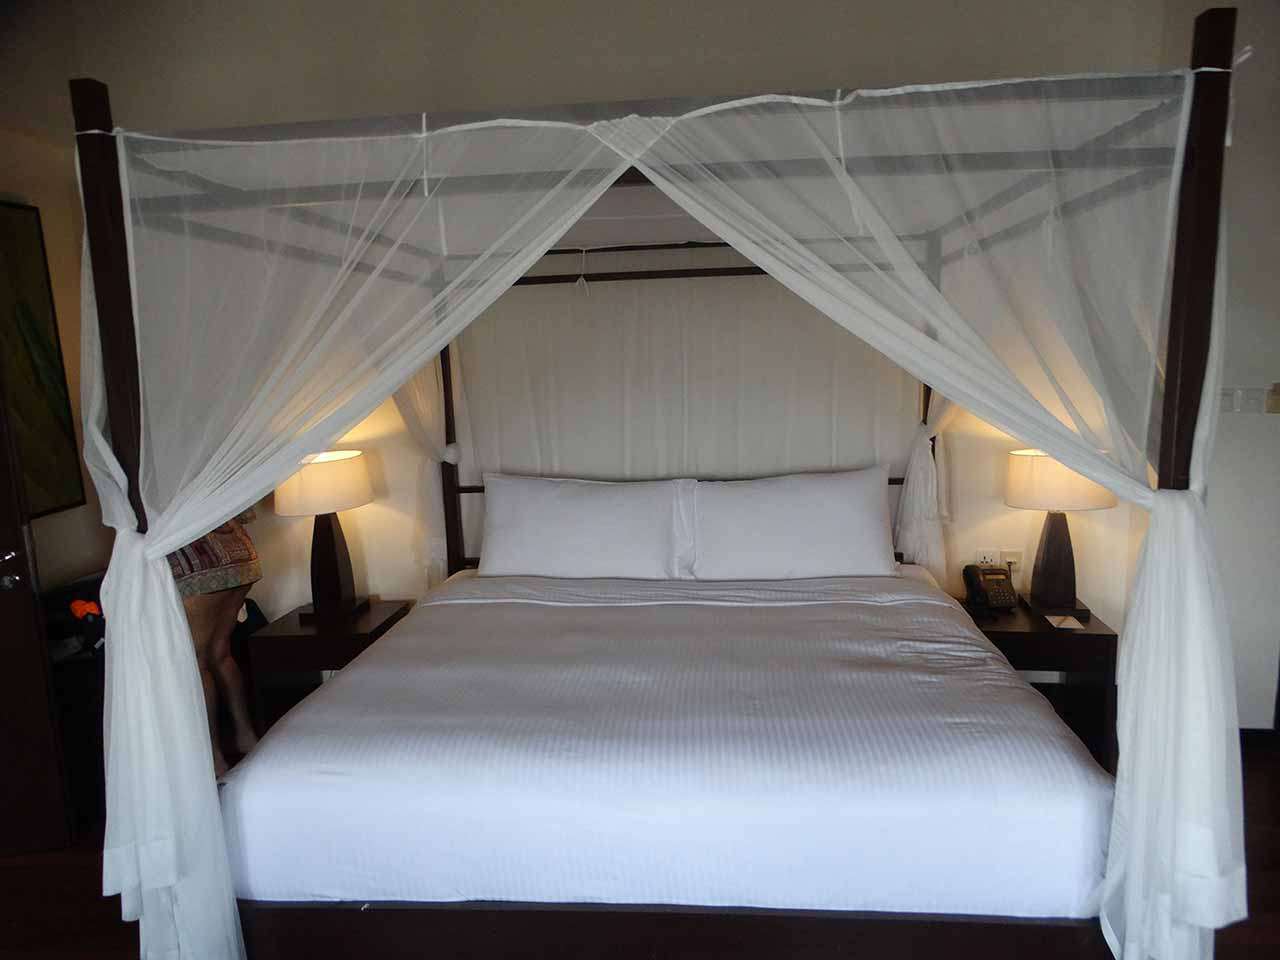 Bed at the resort